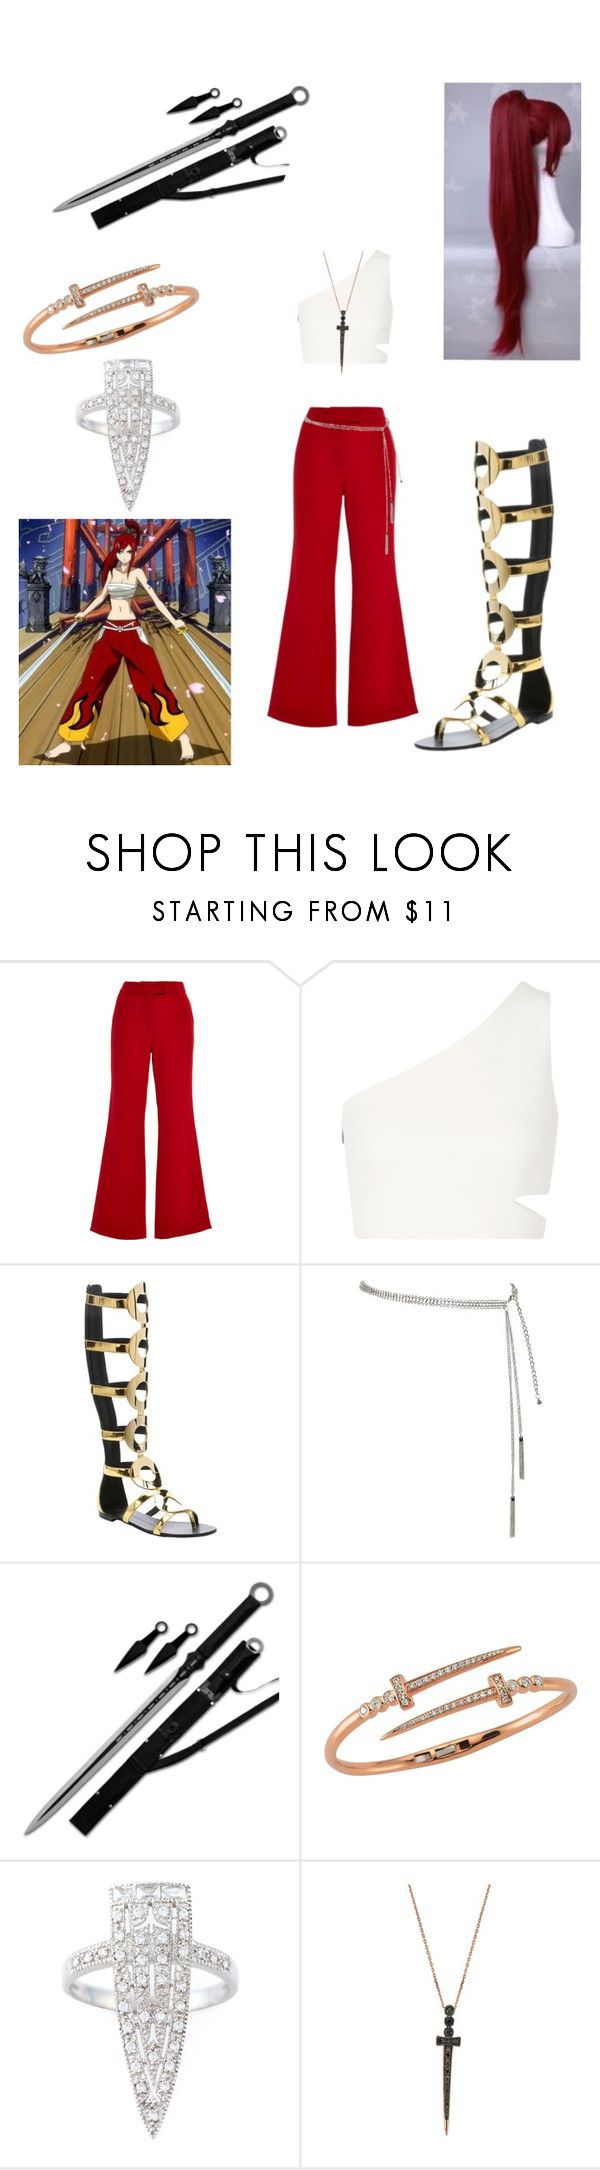 """""""Erza Scarlet Beast Mode!"""" by dragonladydoctor ❤ liked on Polyvore featuring Osman, Elizabeth and James, Giuseppe Zanotti, Bee Goddess and V Jewellery"""